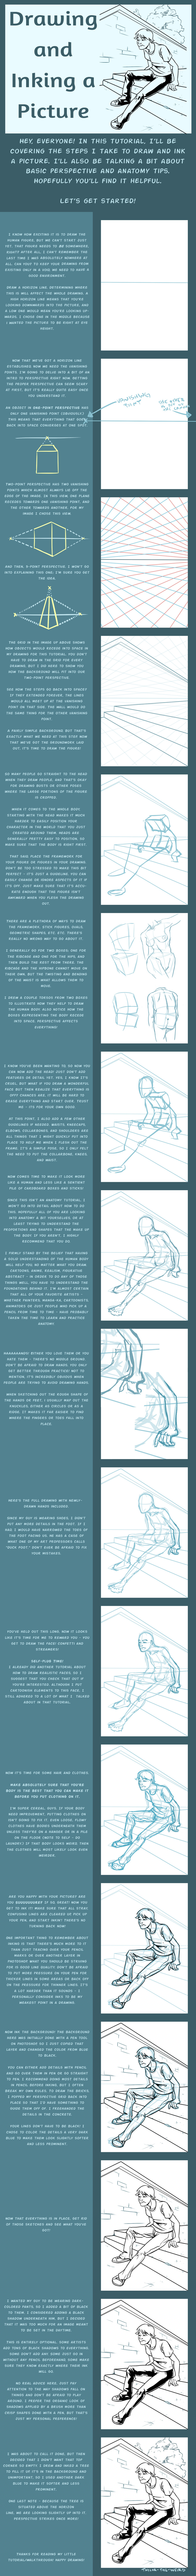 Drawing and Inking a Picture - a Guide by Taylor-the-Weird